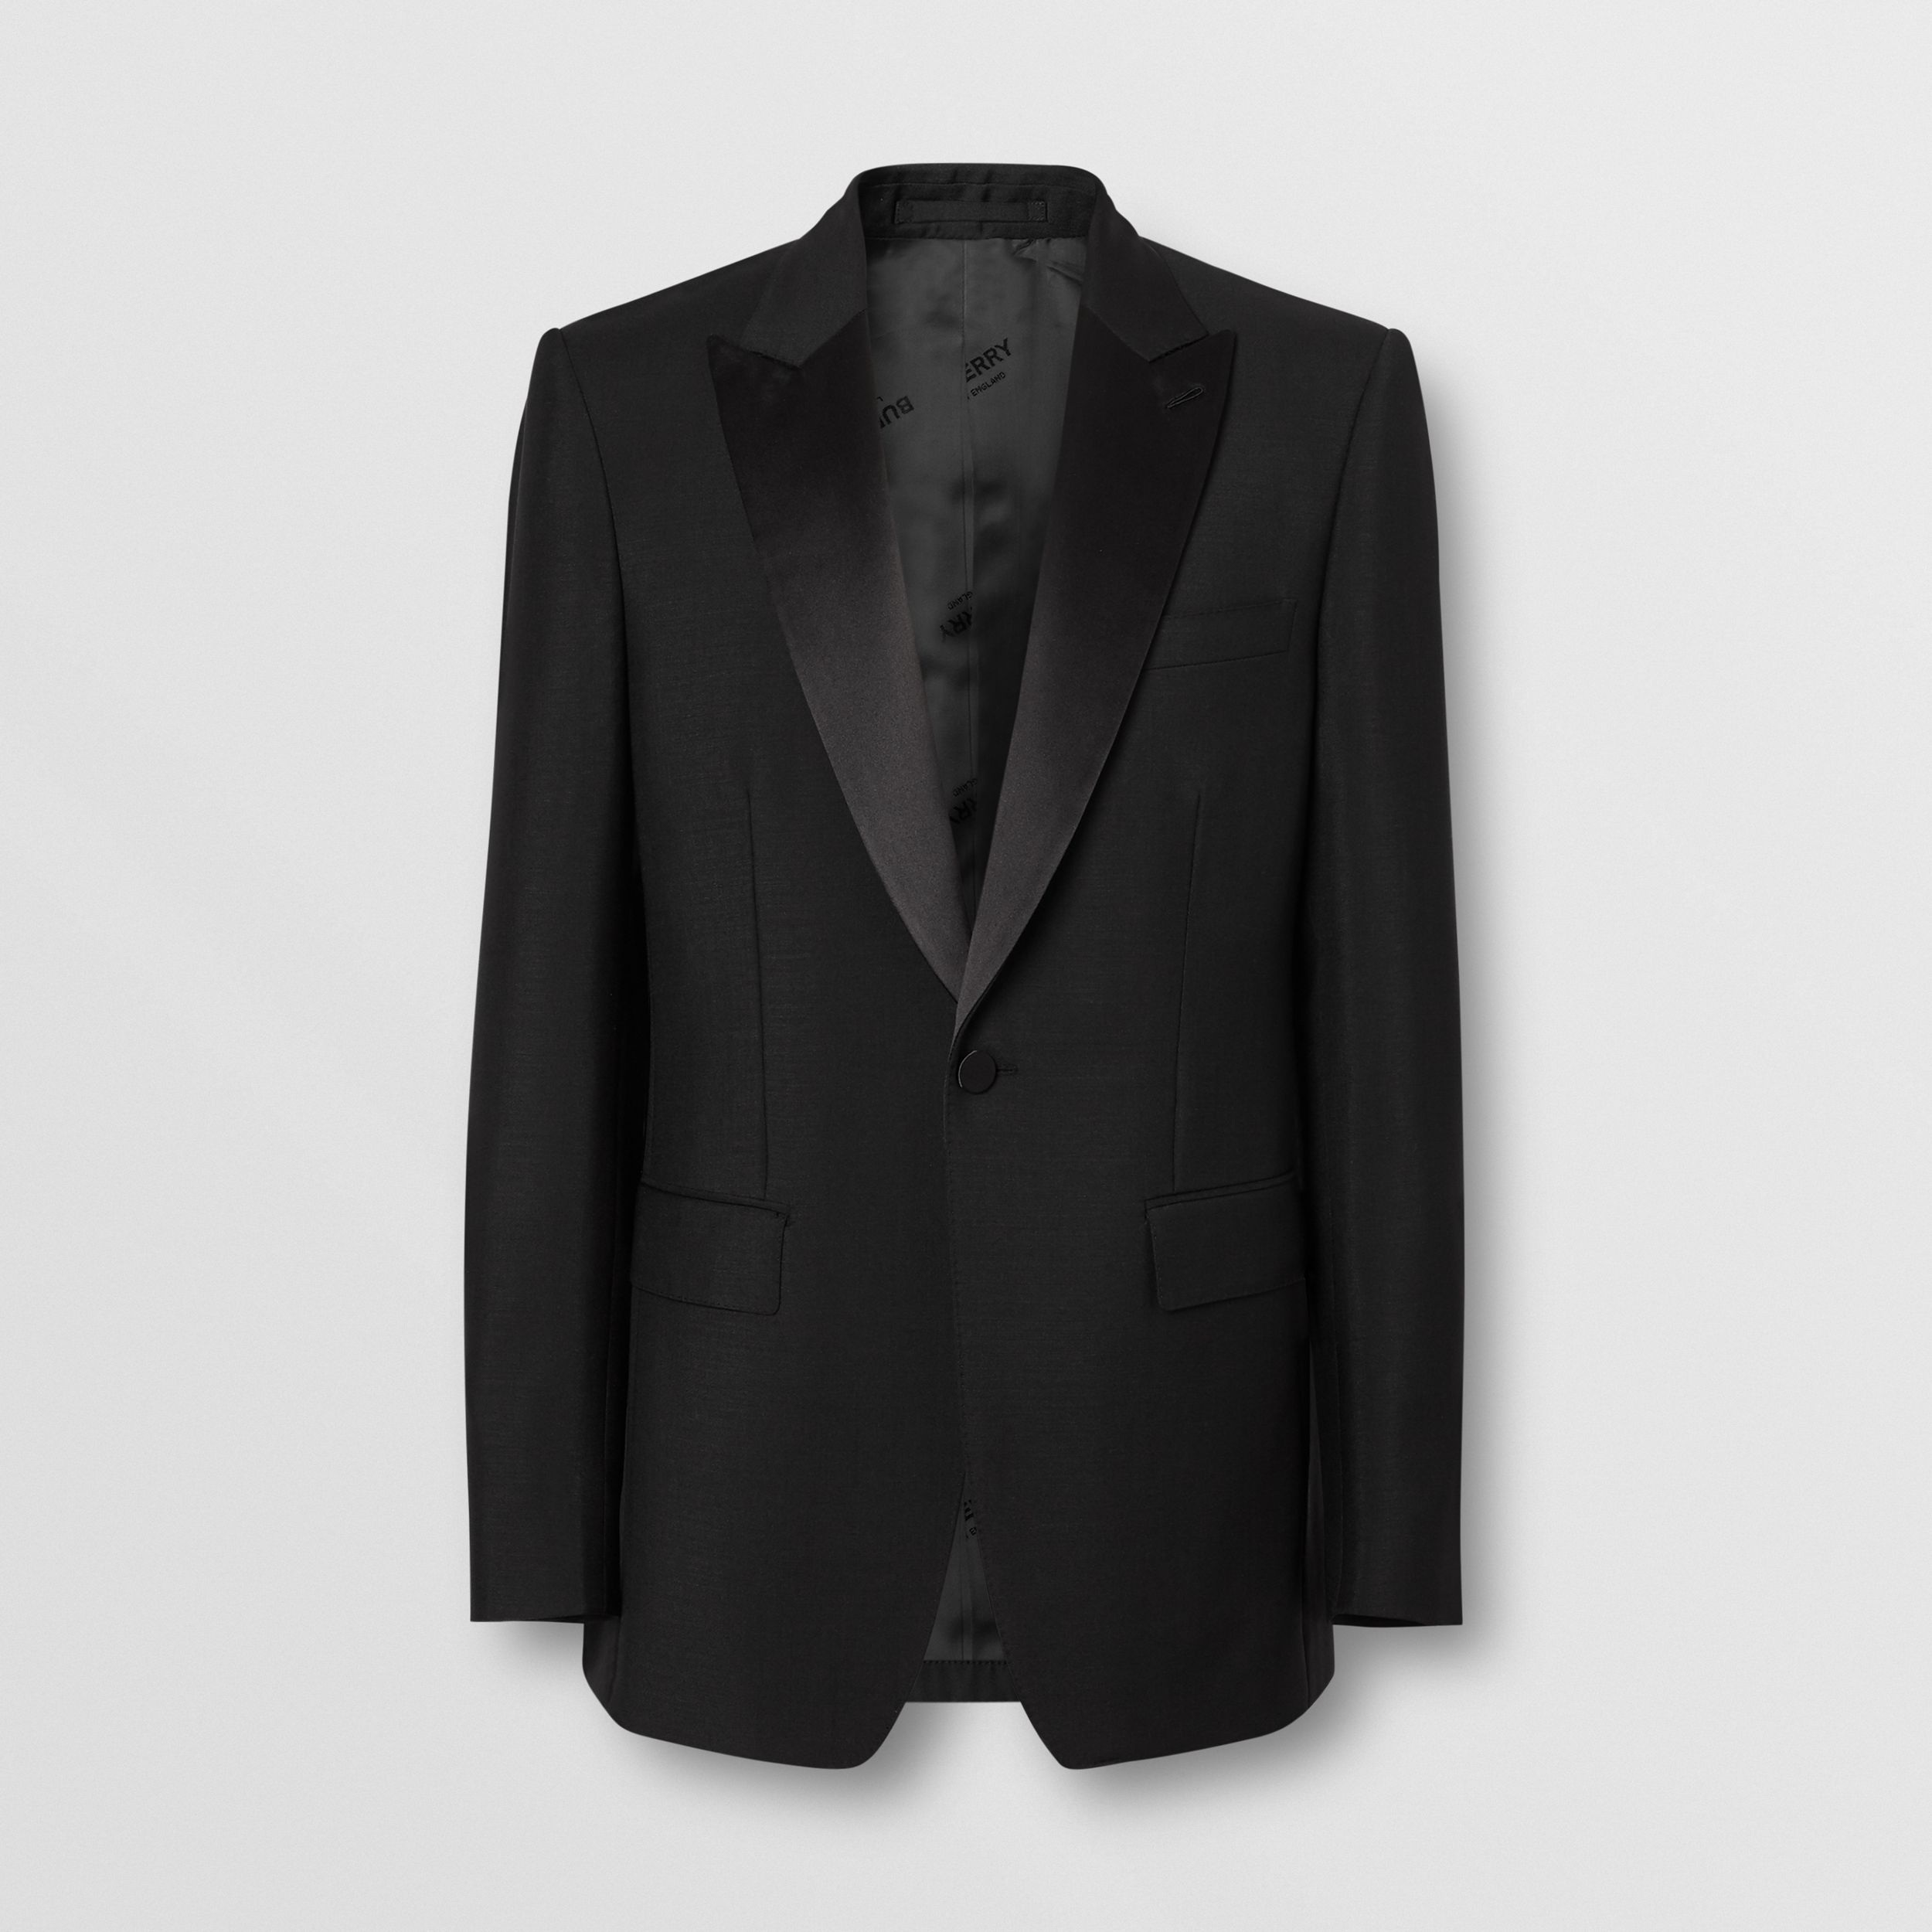 English Fit Mohair Wool Tuxedo in Black - Men | Burberry Canada - 4